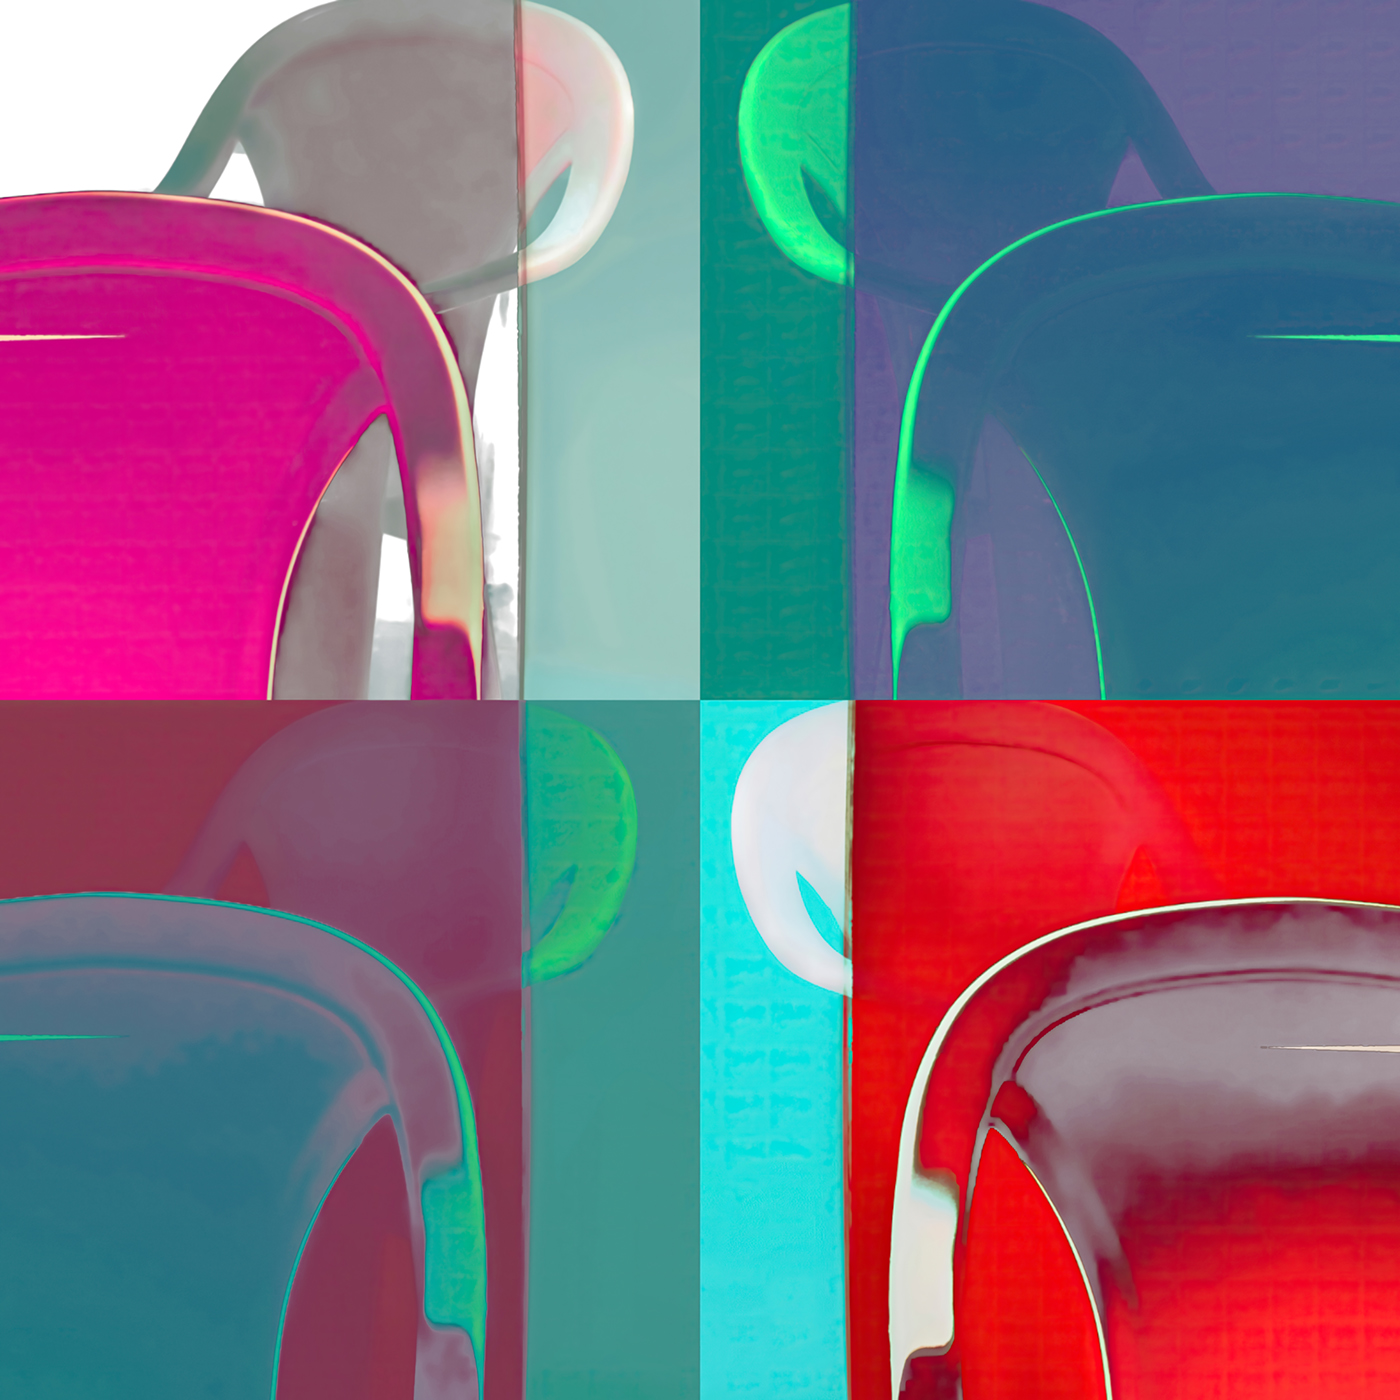 © Petra Jaenicke (Crumbach, Germany)   A chair is a chair